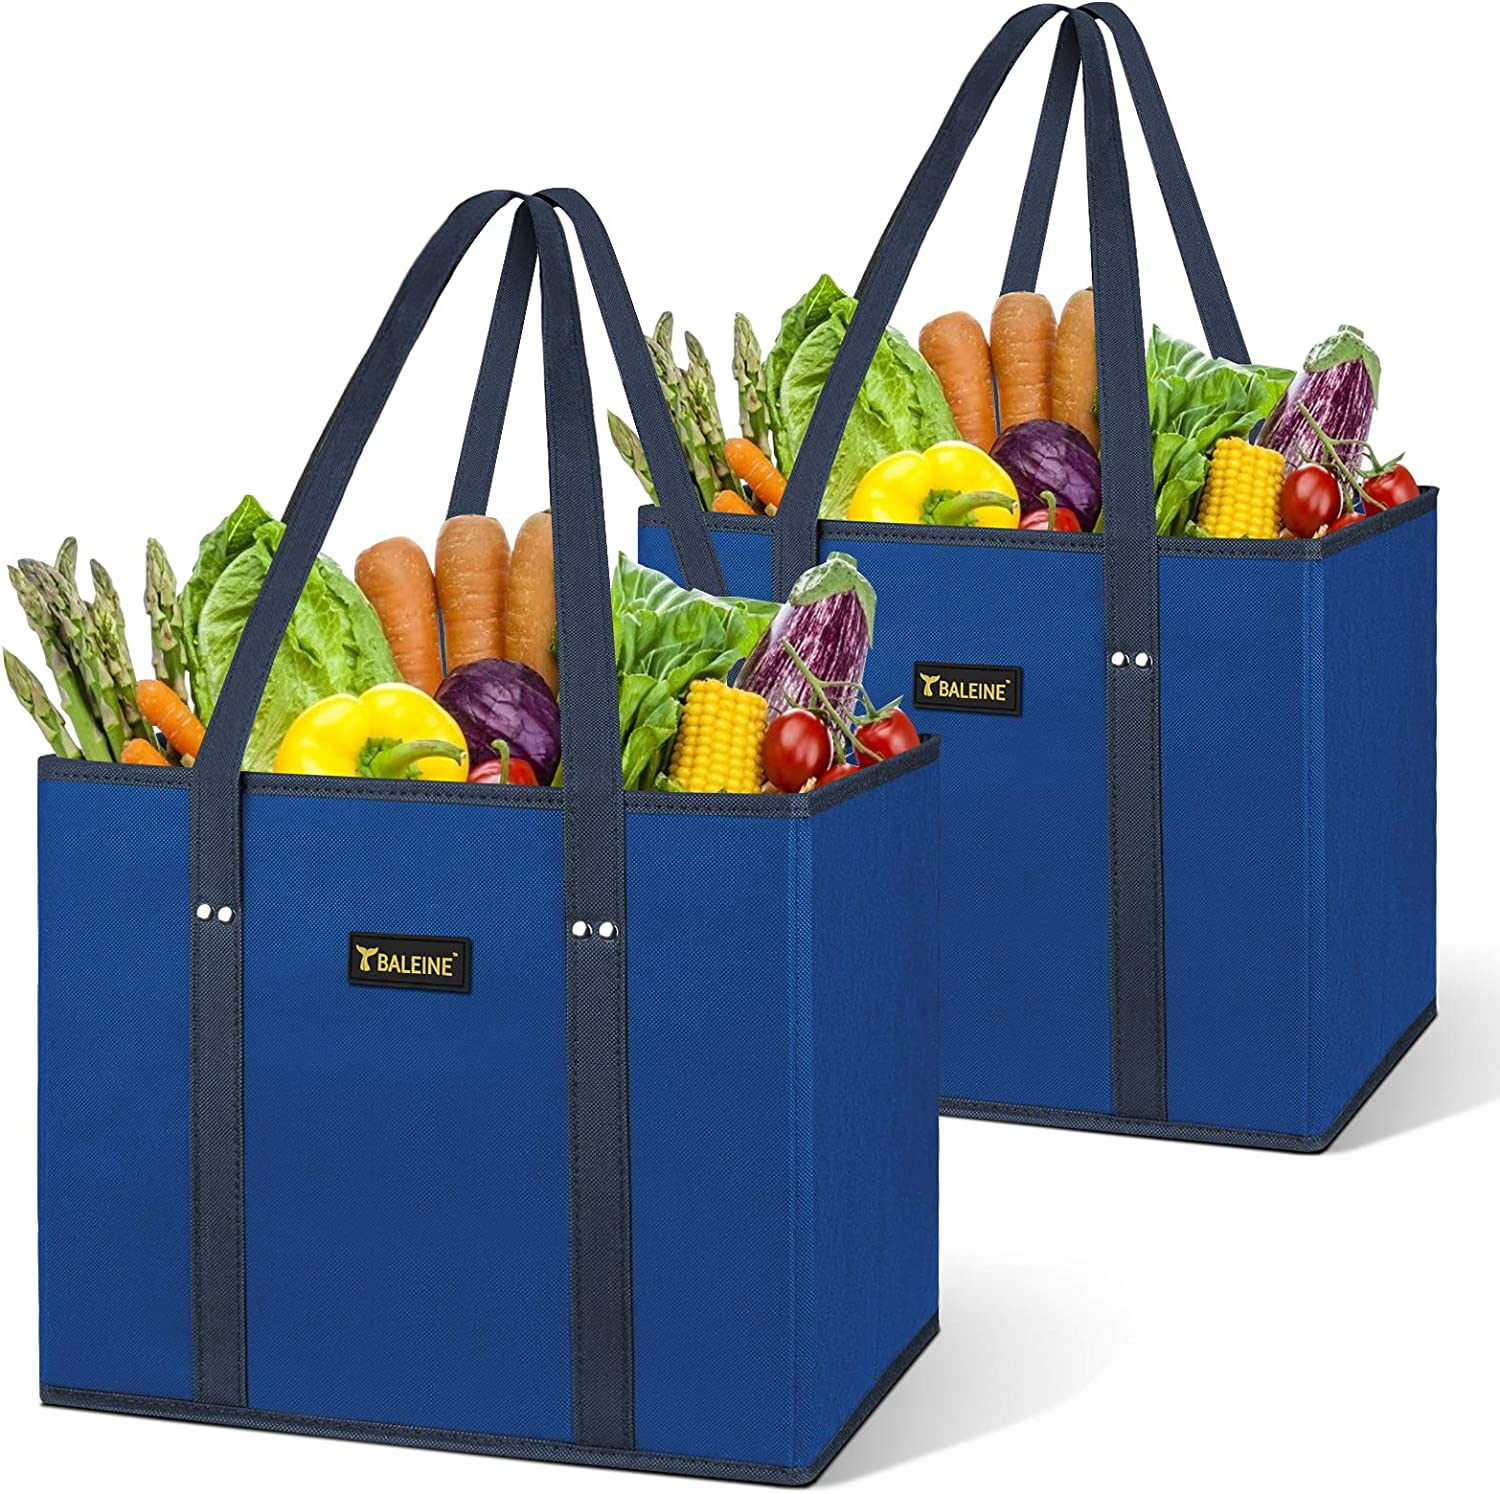 BALEINE 2 Pack Reusable Grocery Reinforce Bags Shopping with It is very popular Bag famous